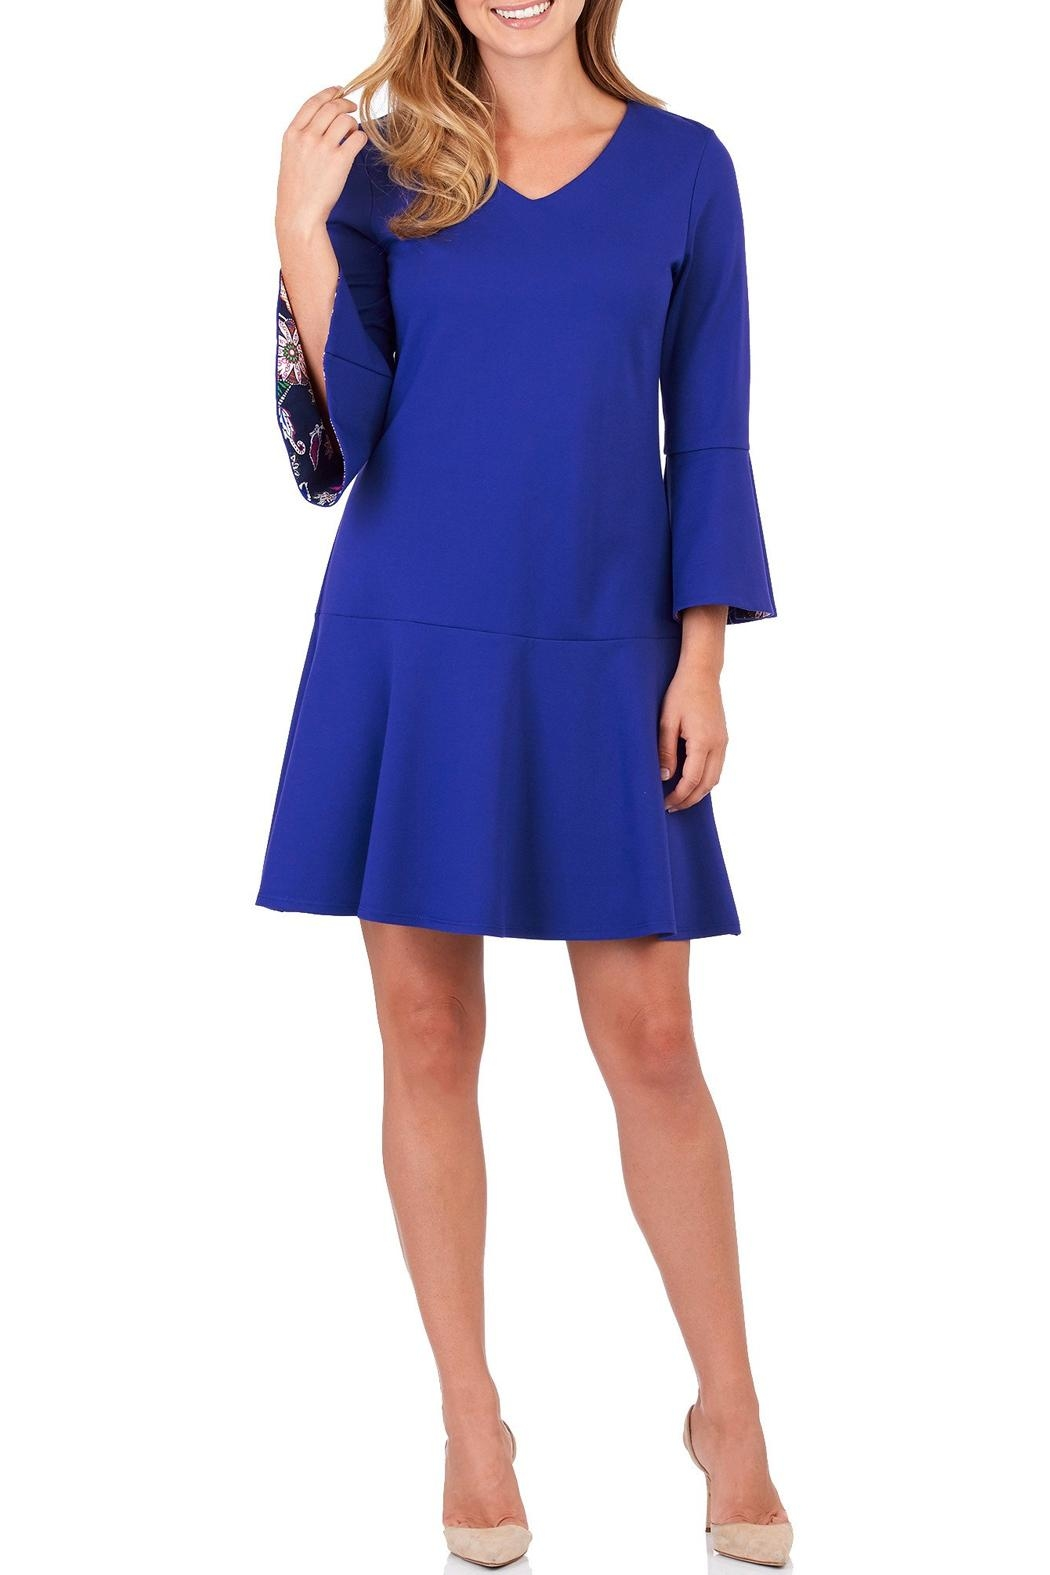 Jude Connally Gabriella Ponte Dress - Main Image